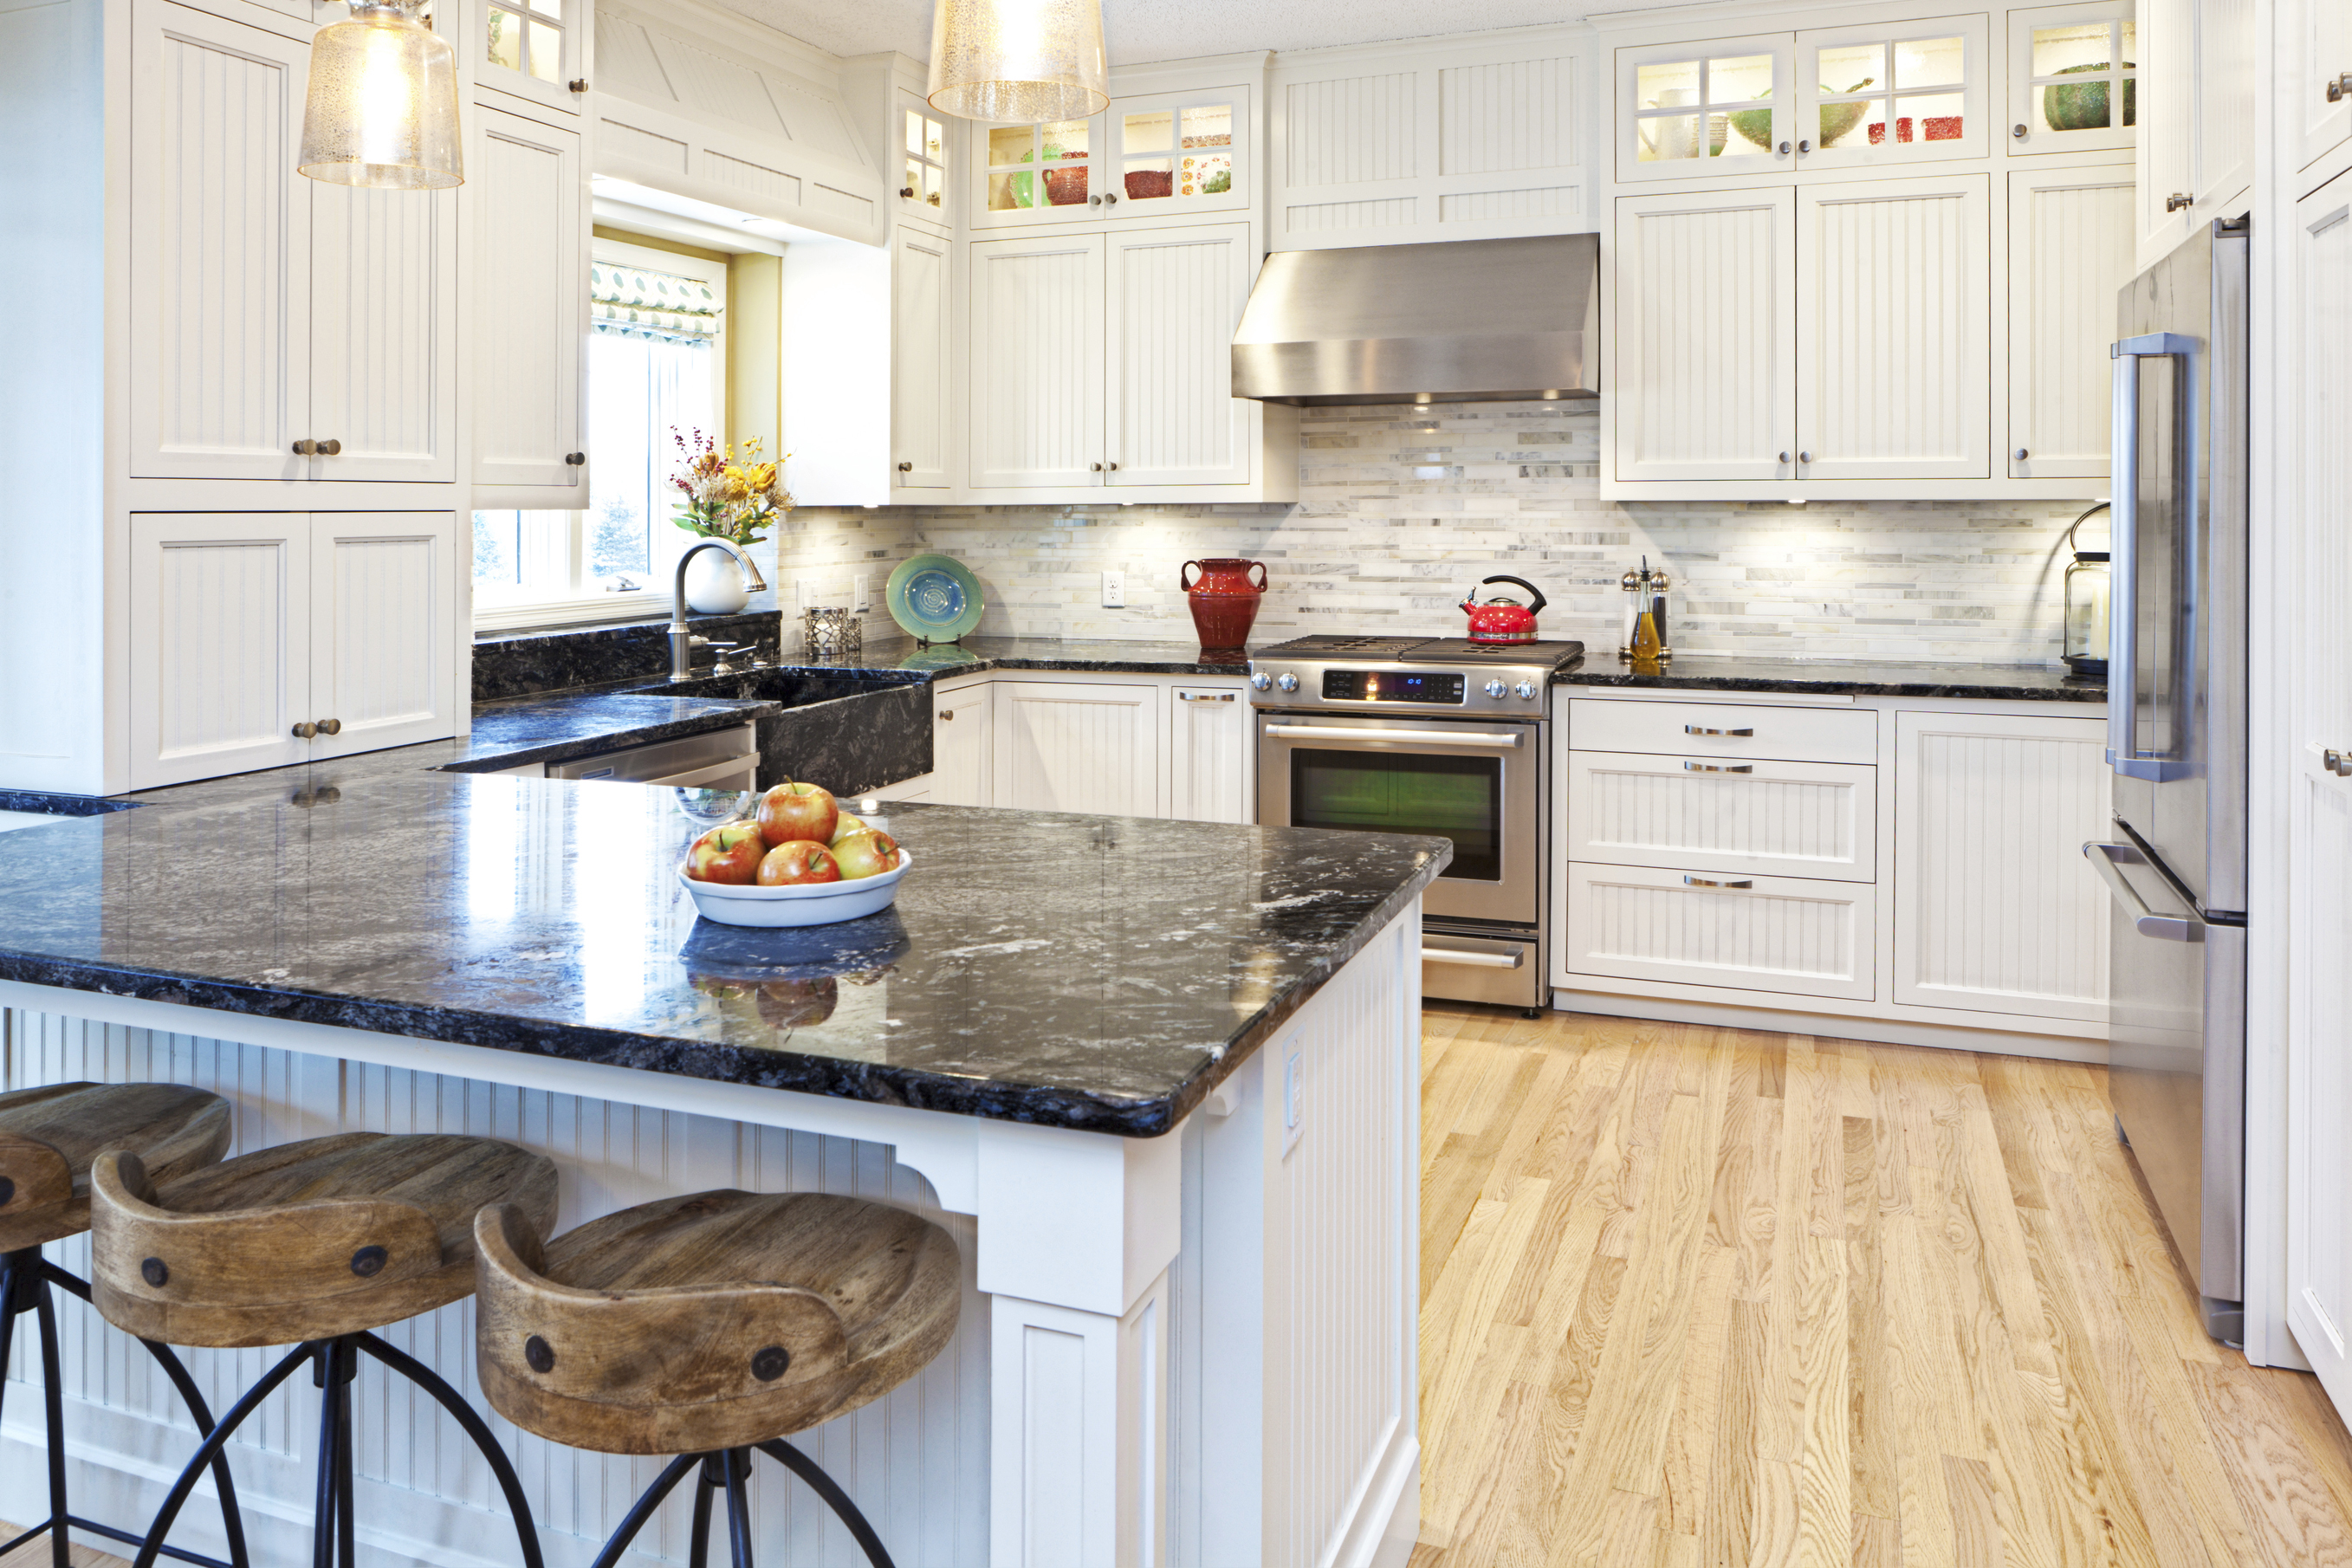 20 Real Estate Photography Tips